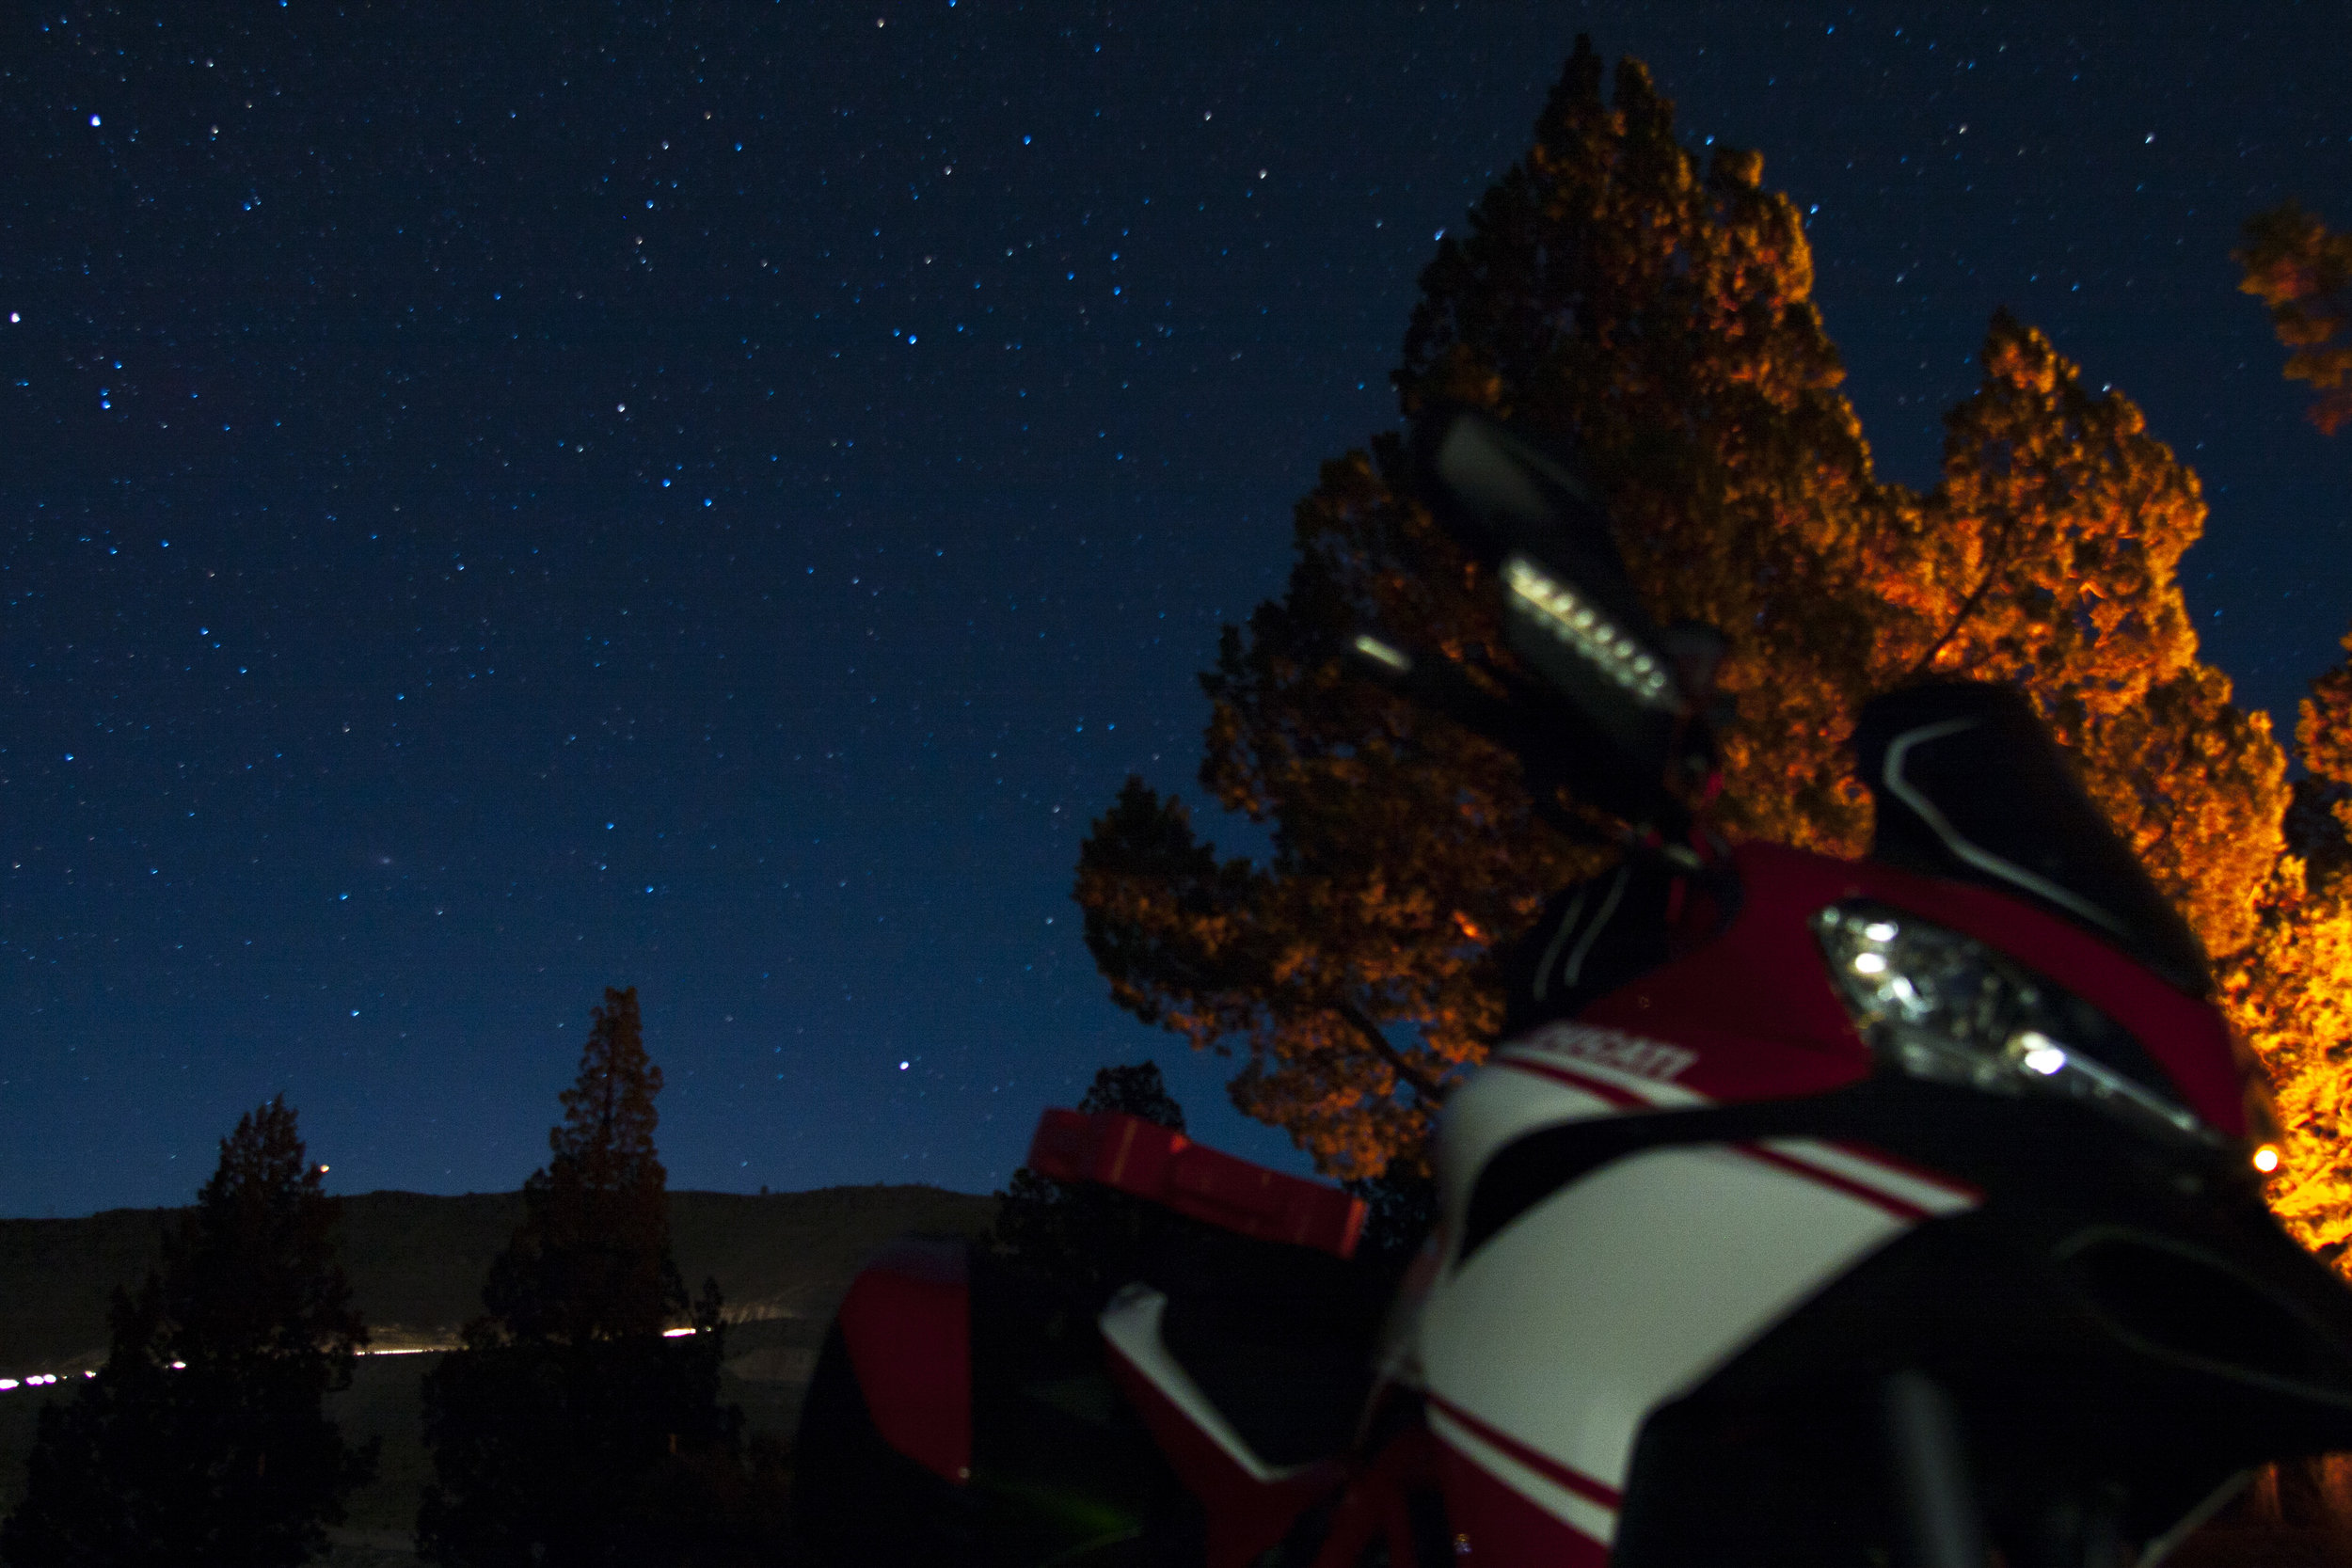 Archie the Multistrada, my favorite form of transportation, and stars as far as the eye could see in the Oregon high desert.